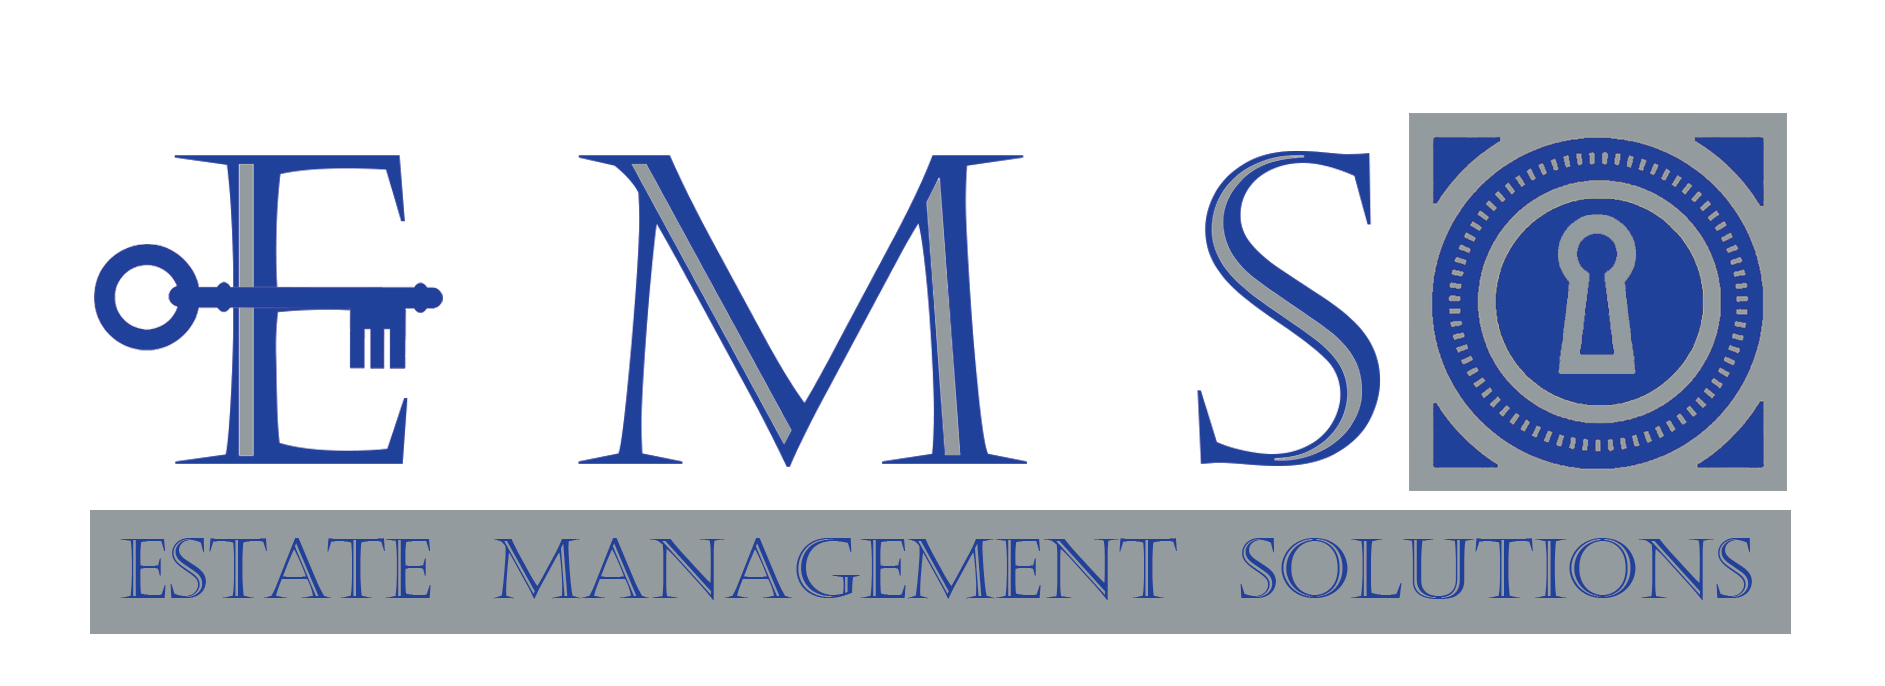 Estate Management Solutions